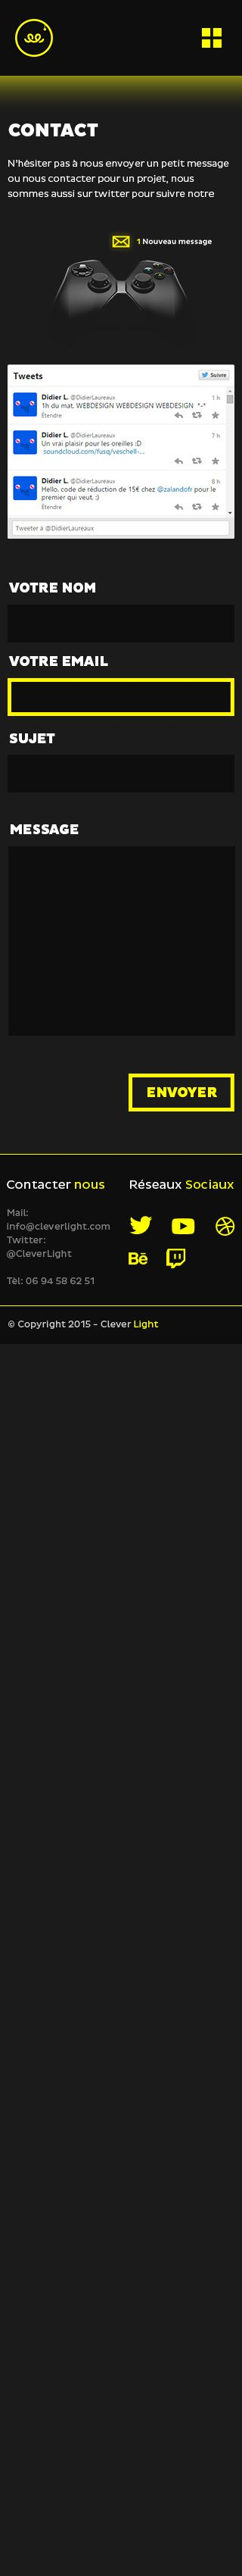 320px page contact